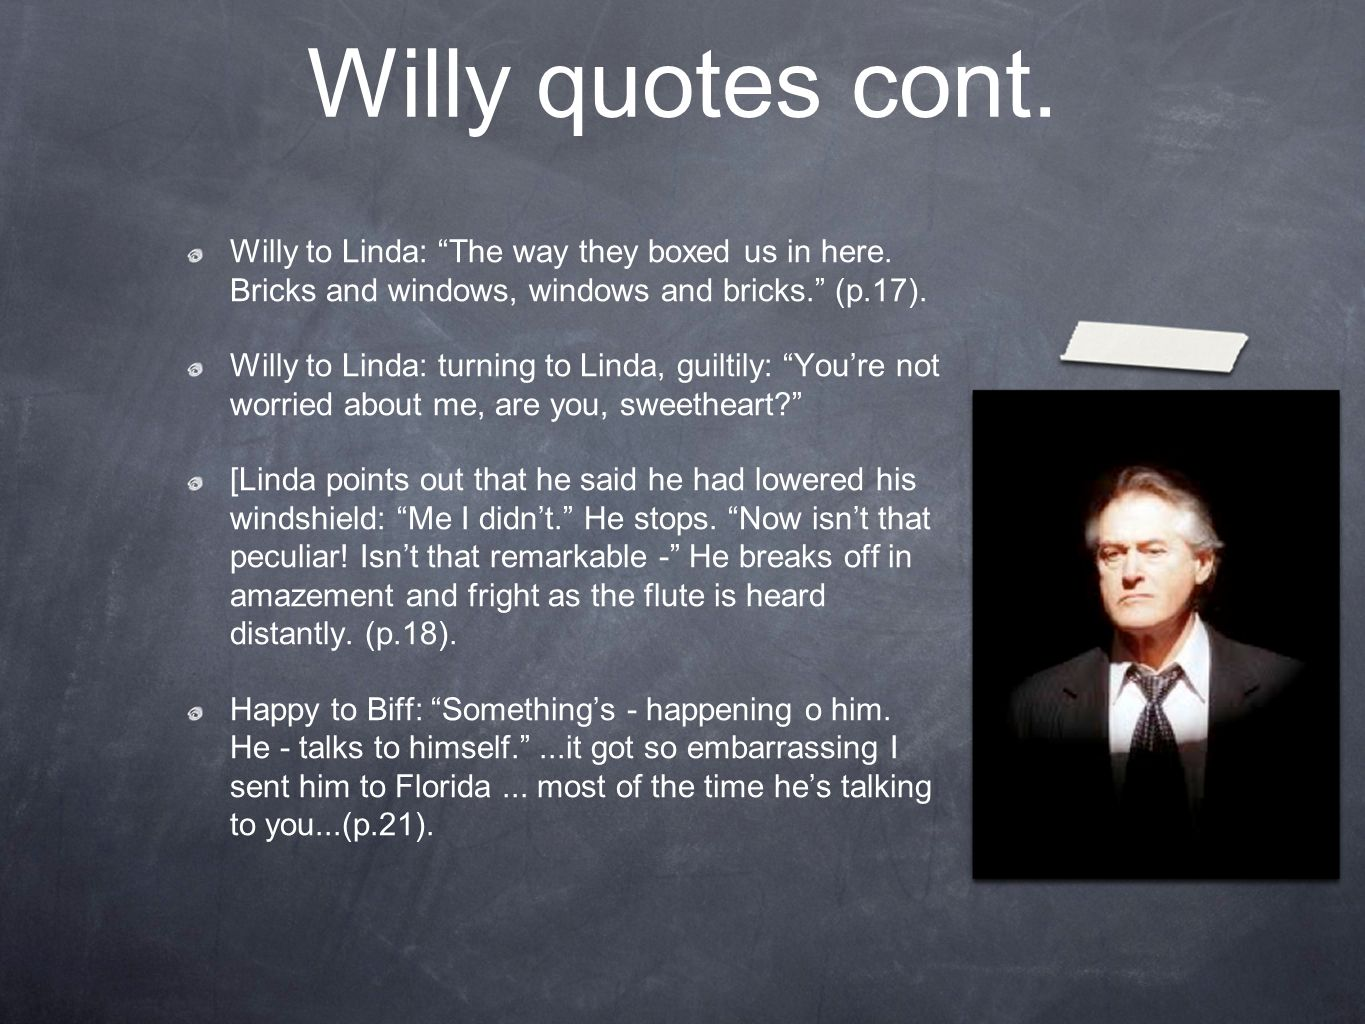 Willy quotes cont. Willy to Linda: The way they boxed us in here. Bricks and windows, windows and bricks. (p.17). Willy to Linda: turning to Linda, gu